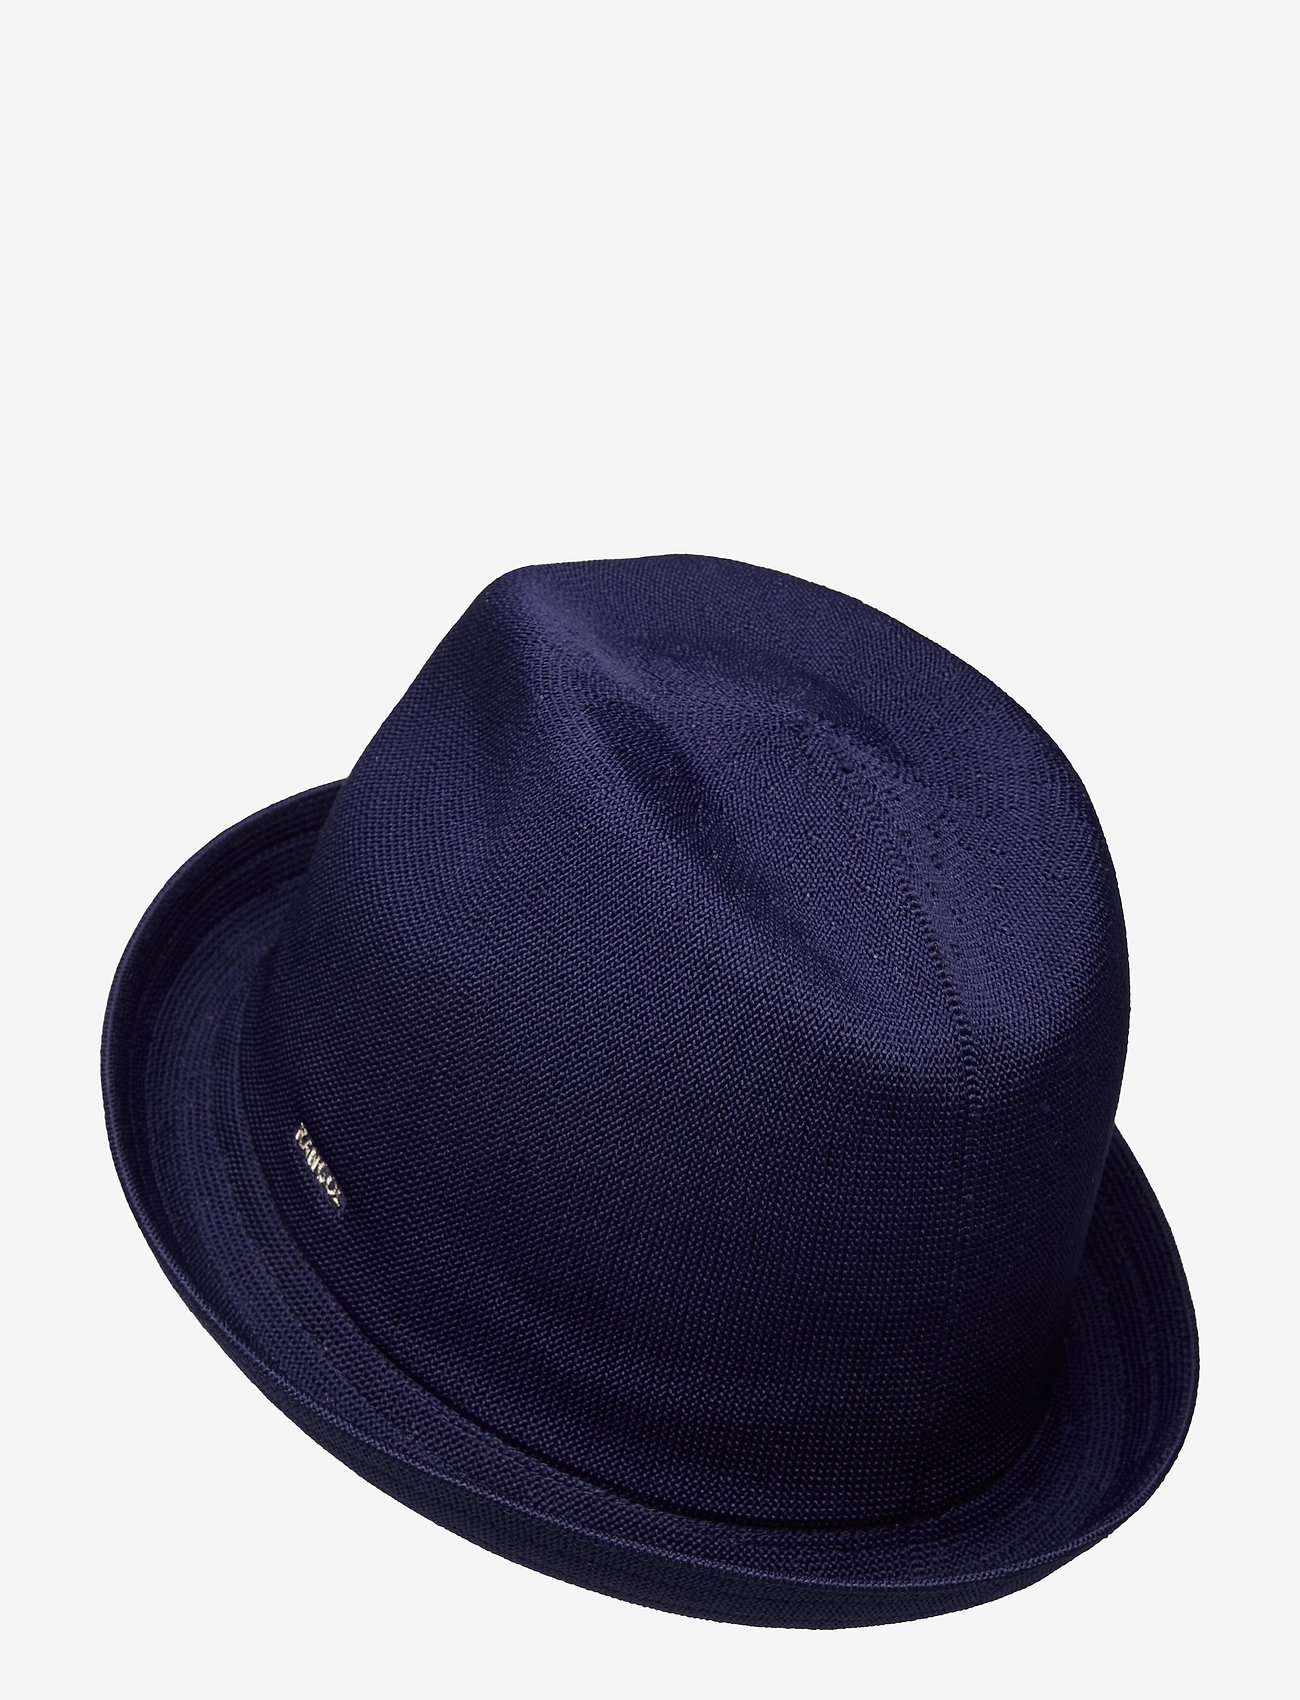 Kangol - KG TROPIC PLAYER - chapeaux - navy - 1